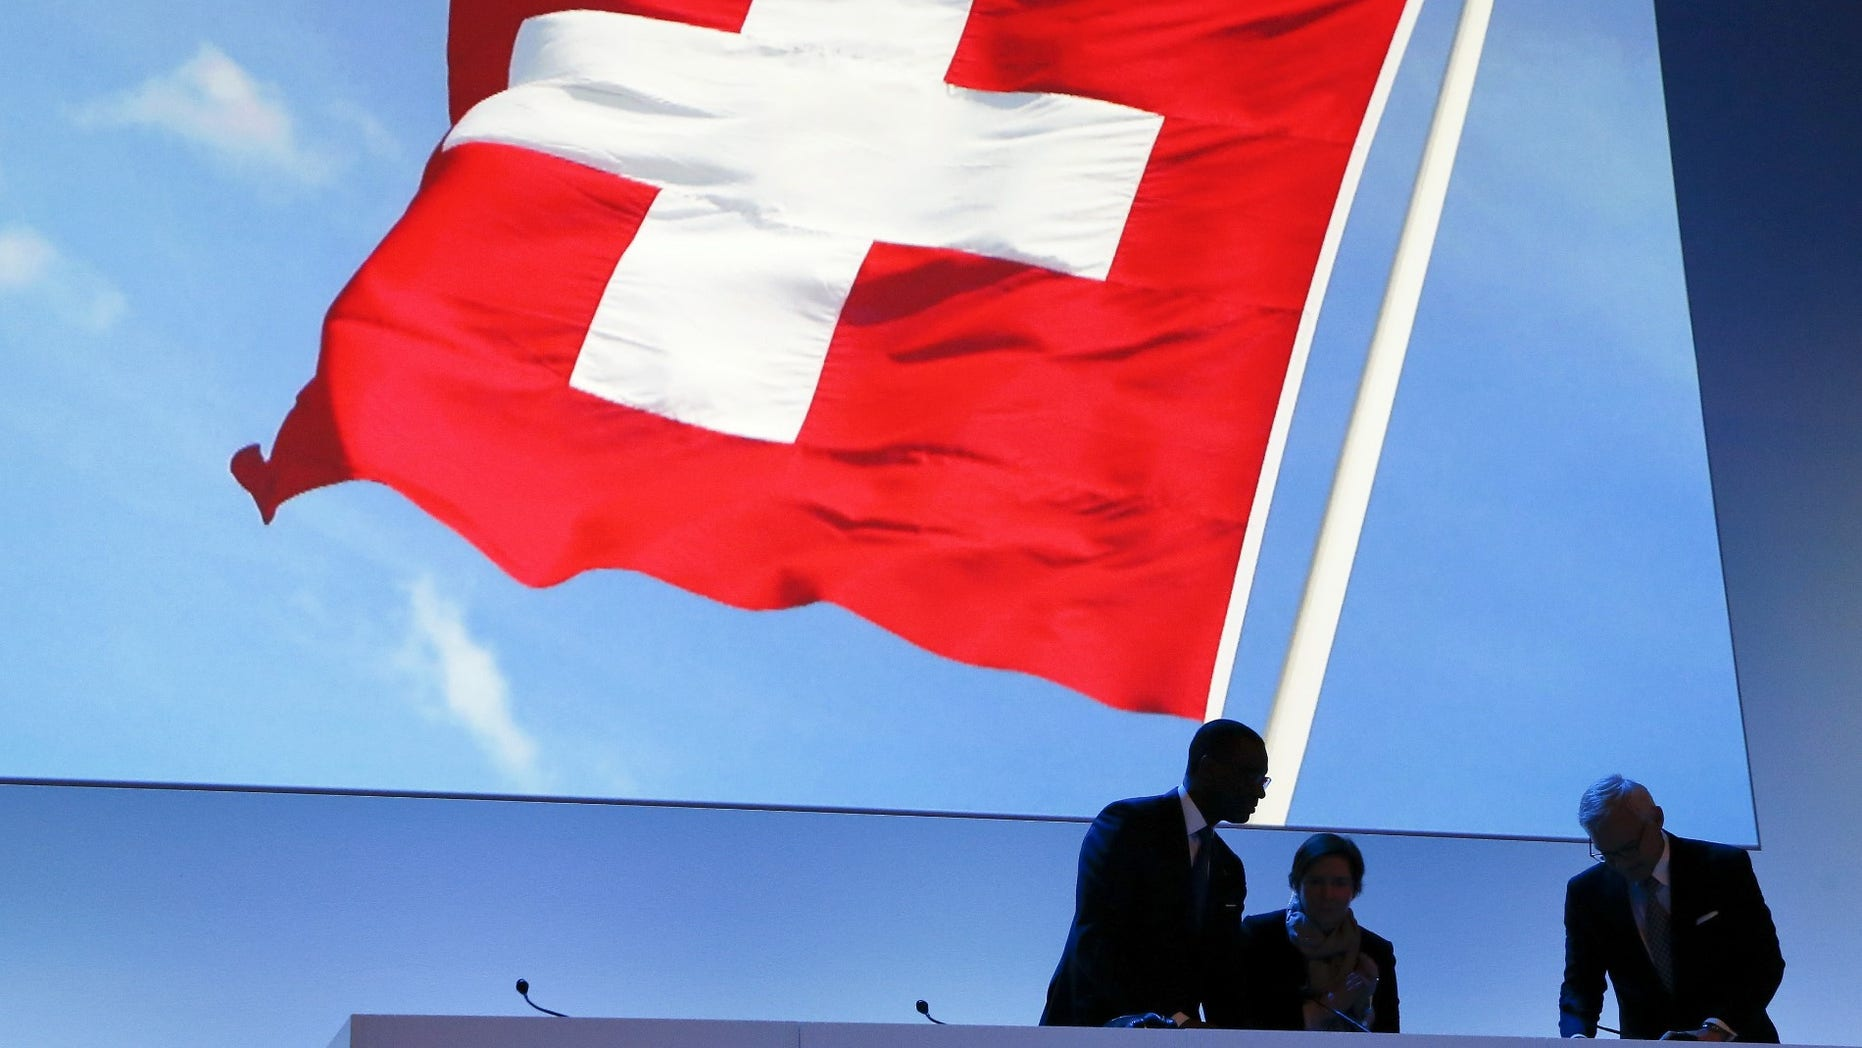 FILE -- Switzerland's national flag is seen in the background.